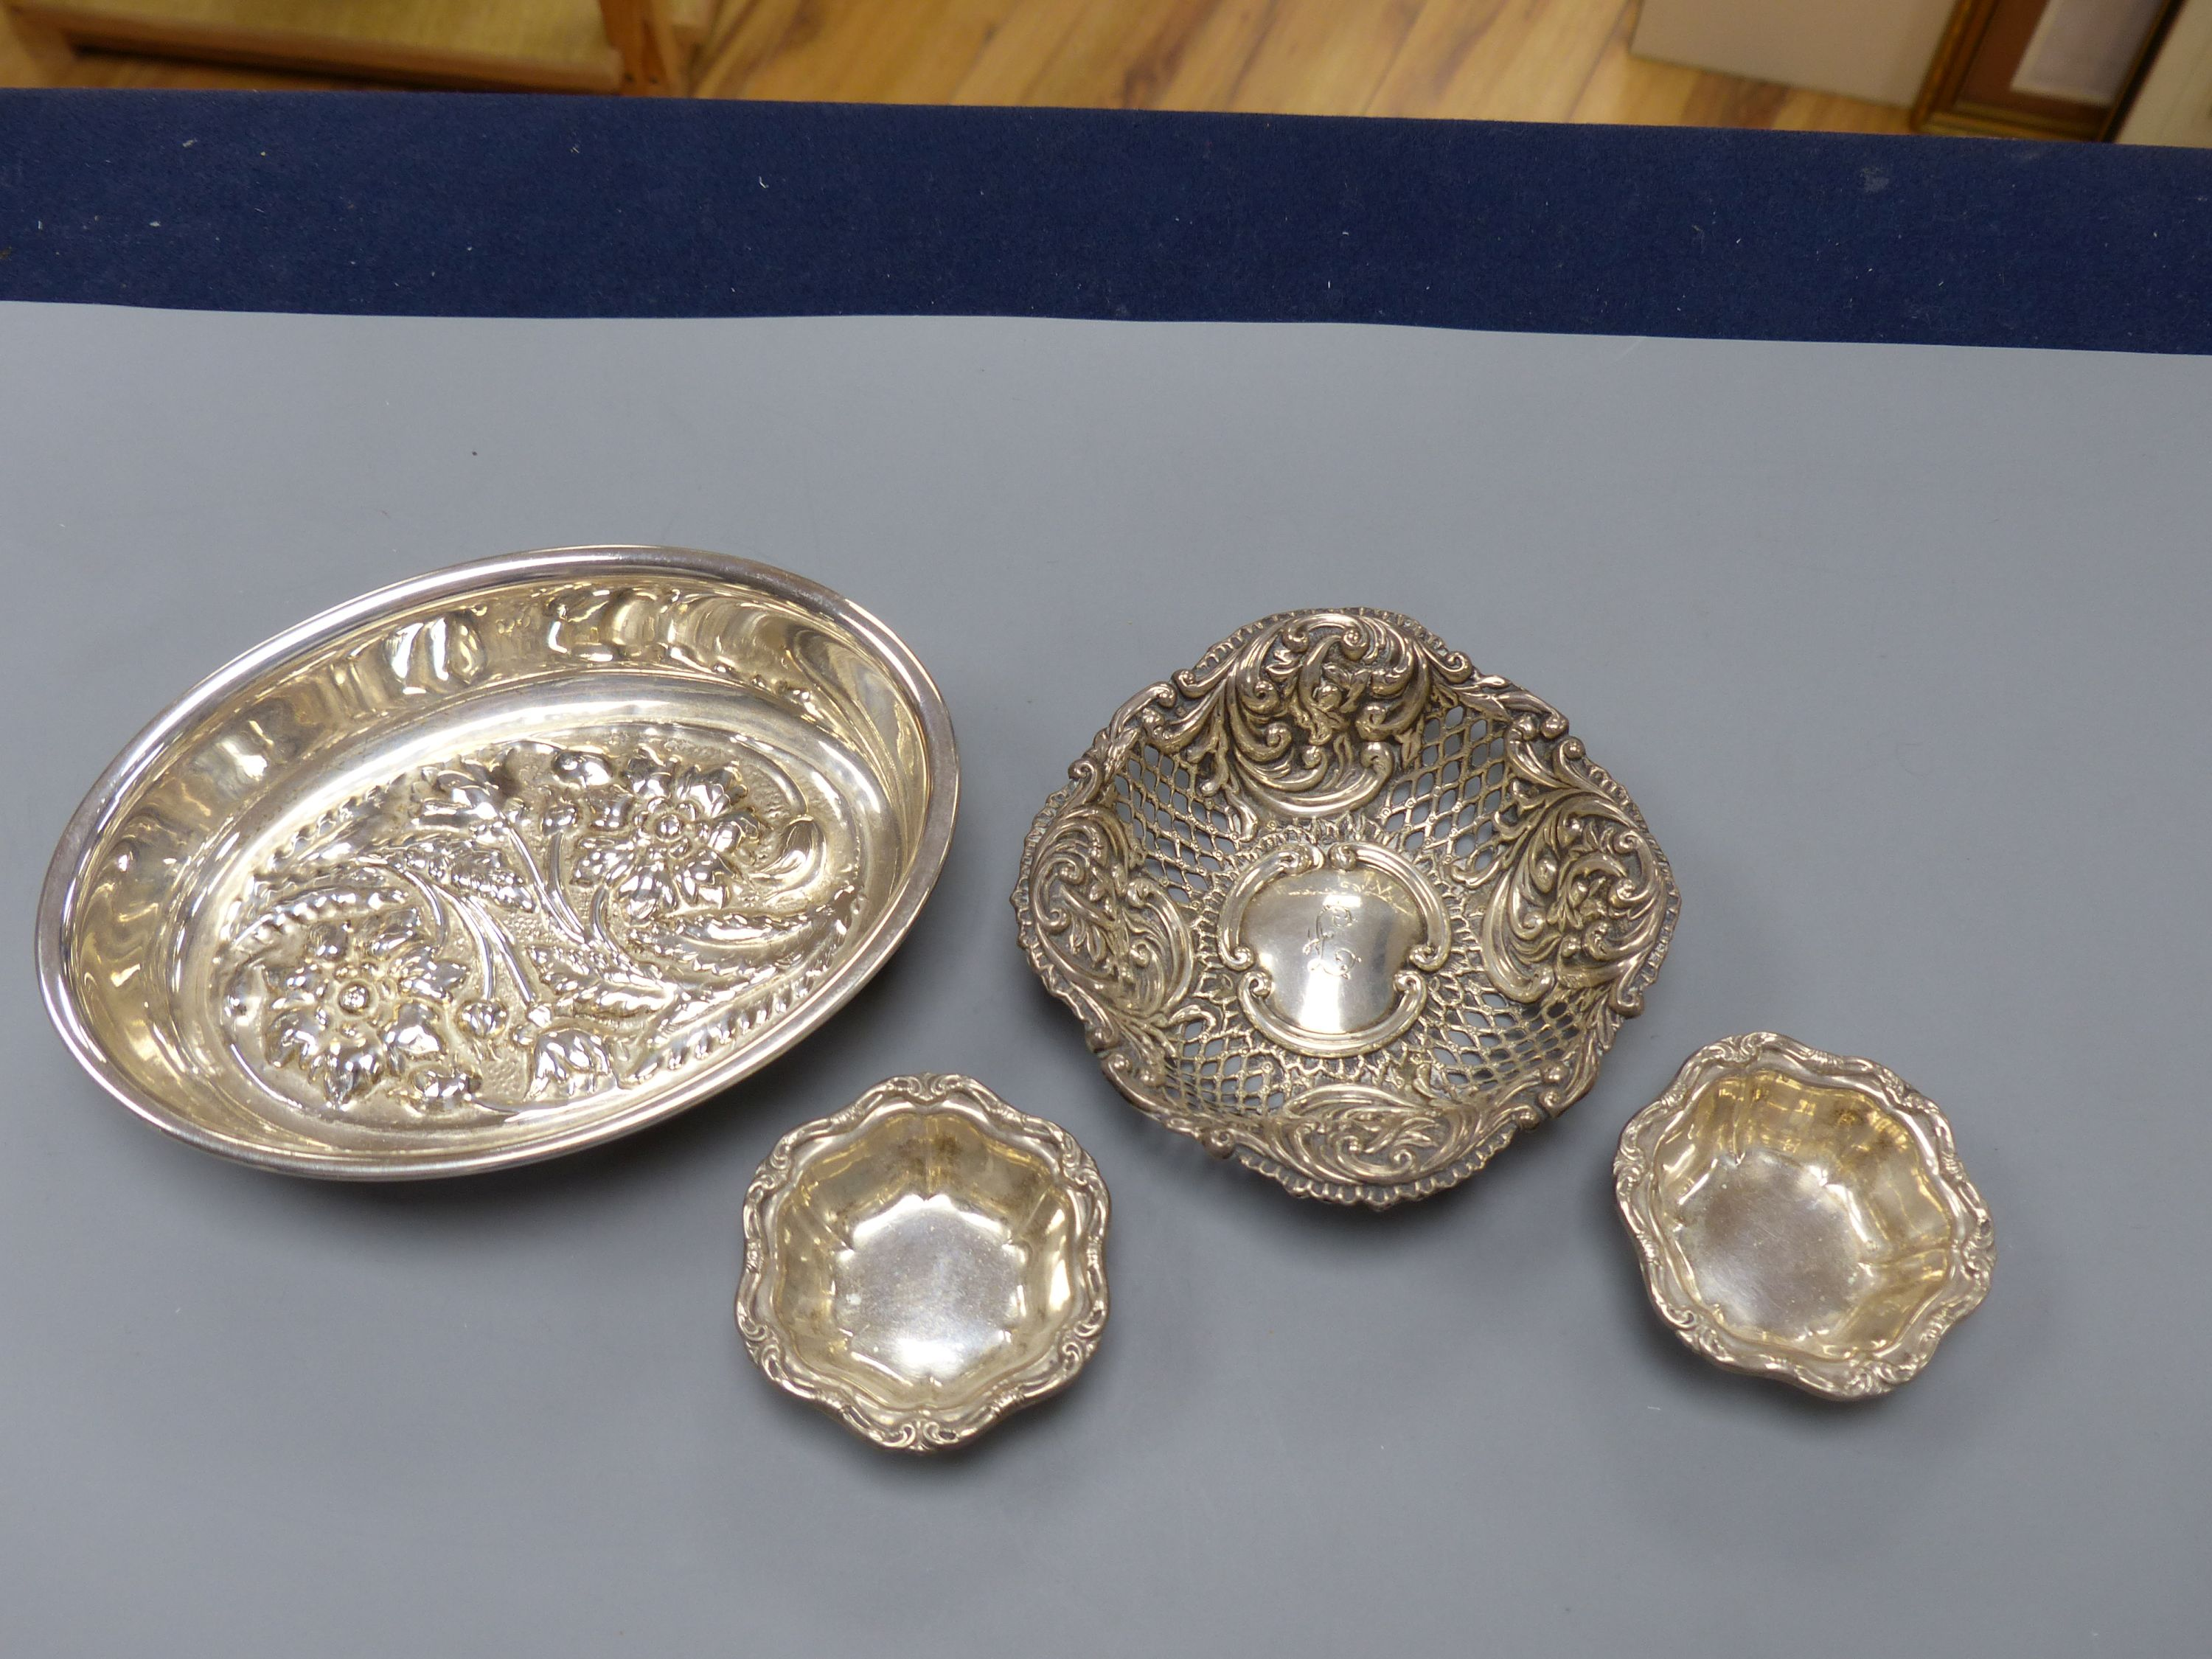 An Italian 8000 standard white metal oval bowl, 15.8cm, two small Birks sterling salts and a - Image 2 of 4